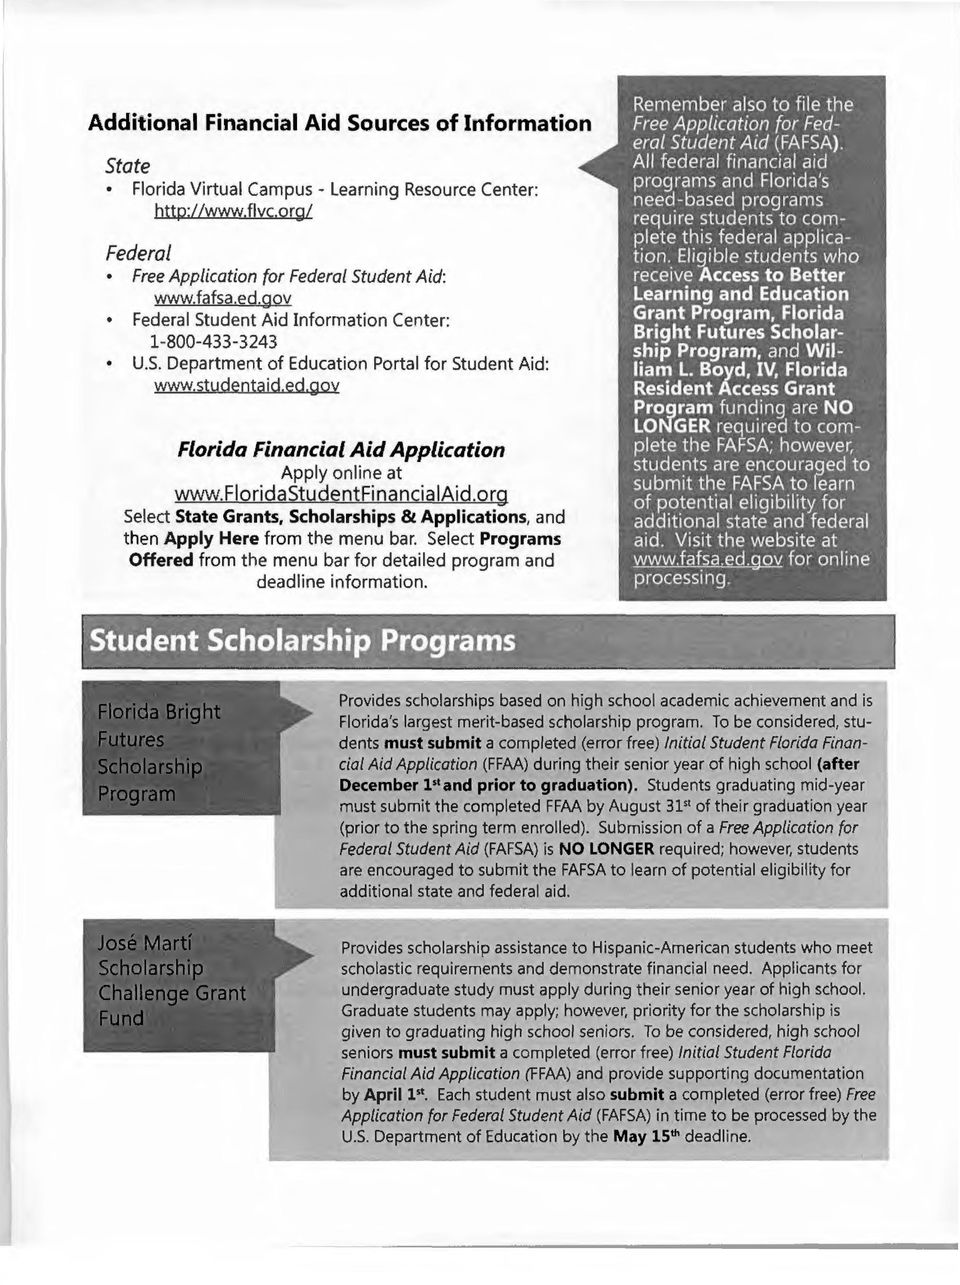 org Select State Grants, Scholarships & Applications, and then Apply Here from the menu bar. Select Programs Offered from the menu bar for detailed program and deadline information.